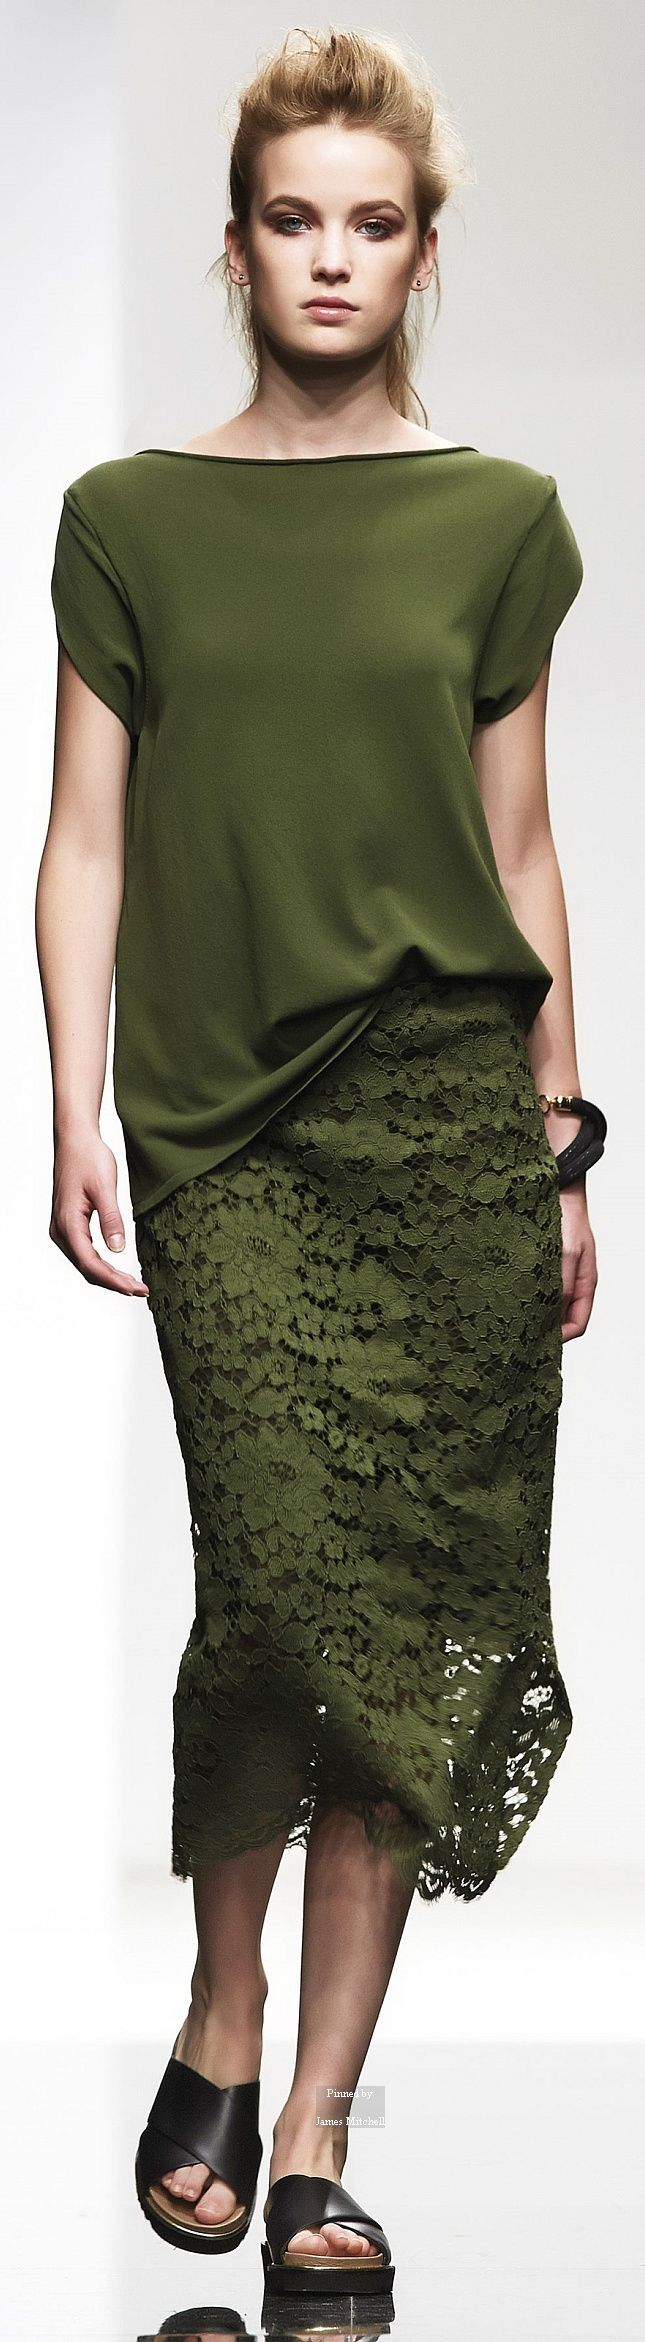 Liviana Conti Spring Summer 2015 Ready-To-Wear collection ❤ buyandwearstrategy.com ❤